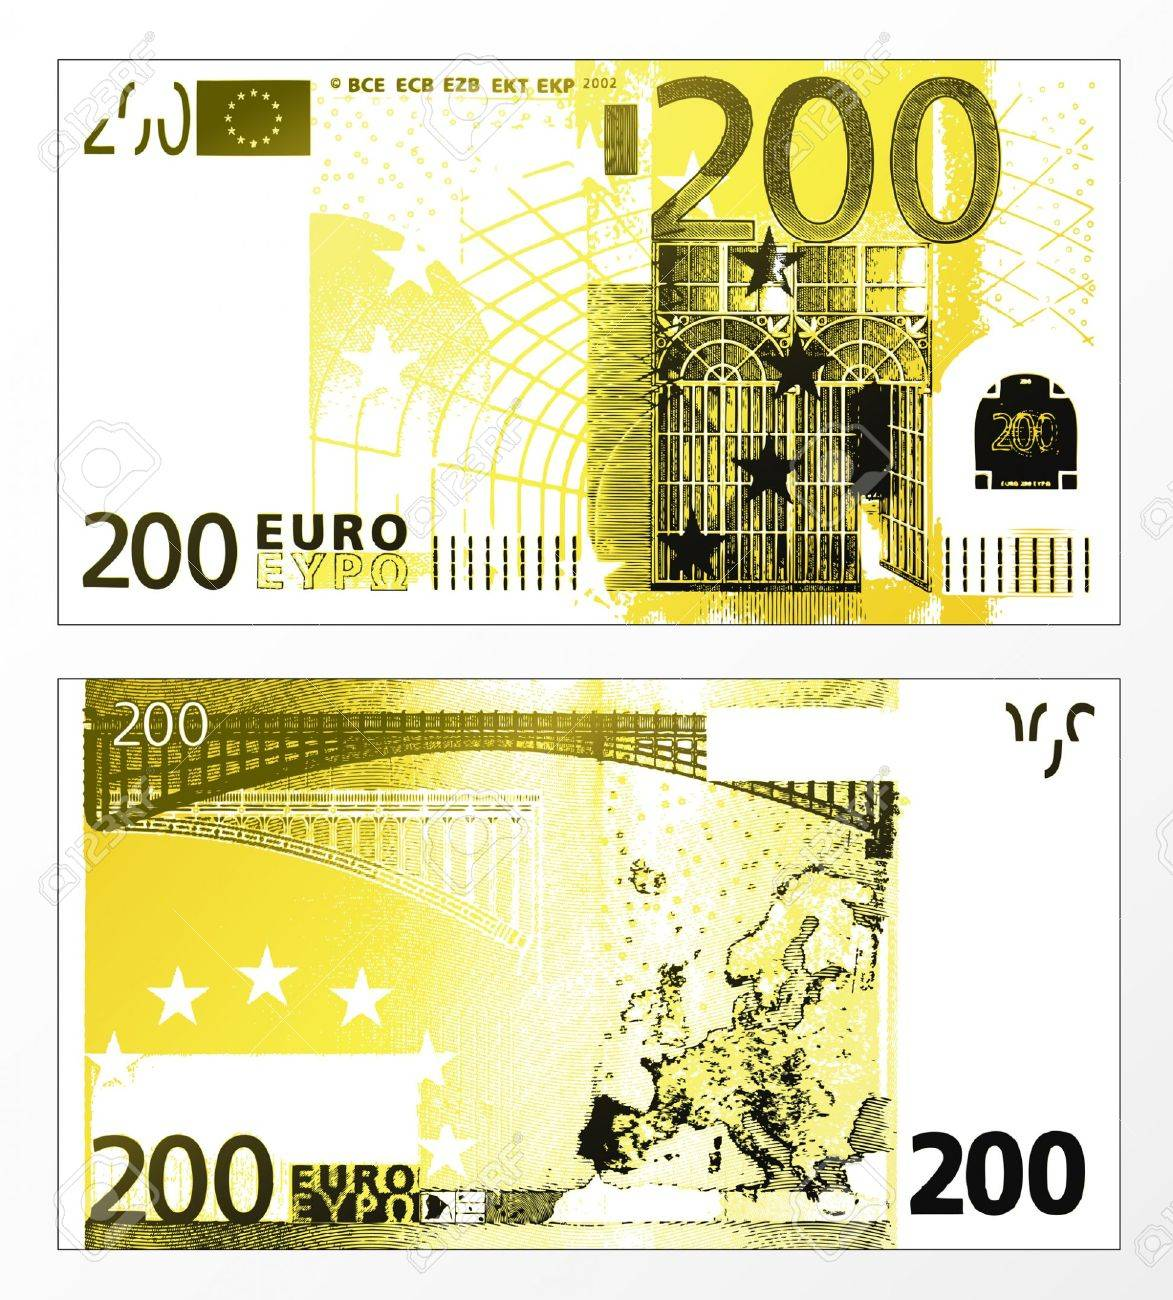 Vector illustration of a cleaned trace layered double sided European Union banknote of 200 Euros. - 4045981